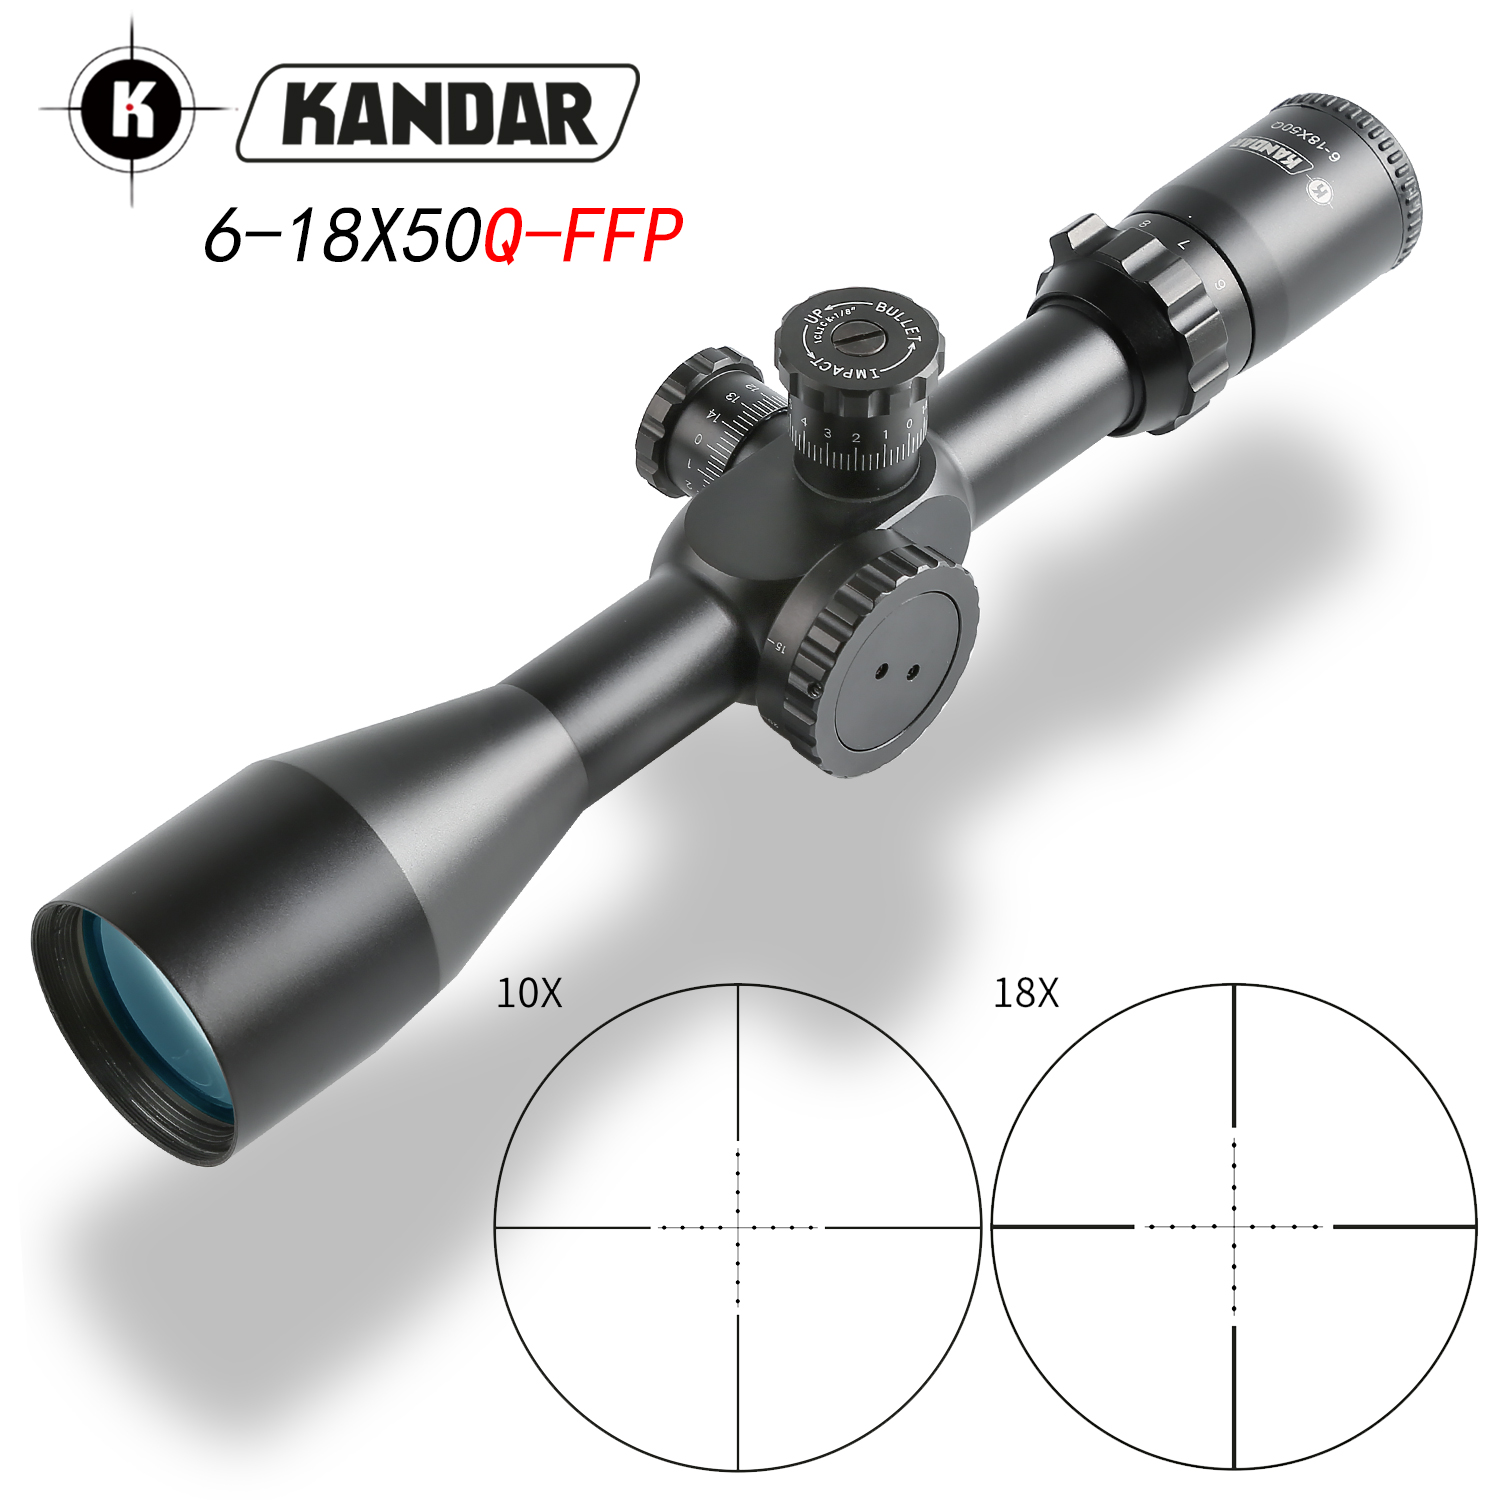 KANDAR 6-18X50 FFP Tactical Riflescope Red Green Illuminate Rifle Scope Sniper Optic Sight Hunting Scopes Red Dot Hunting Optics